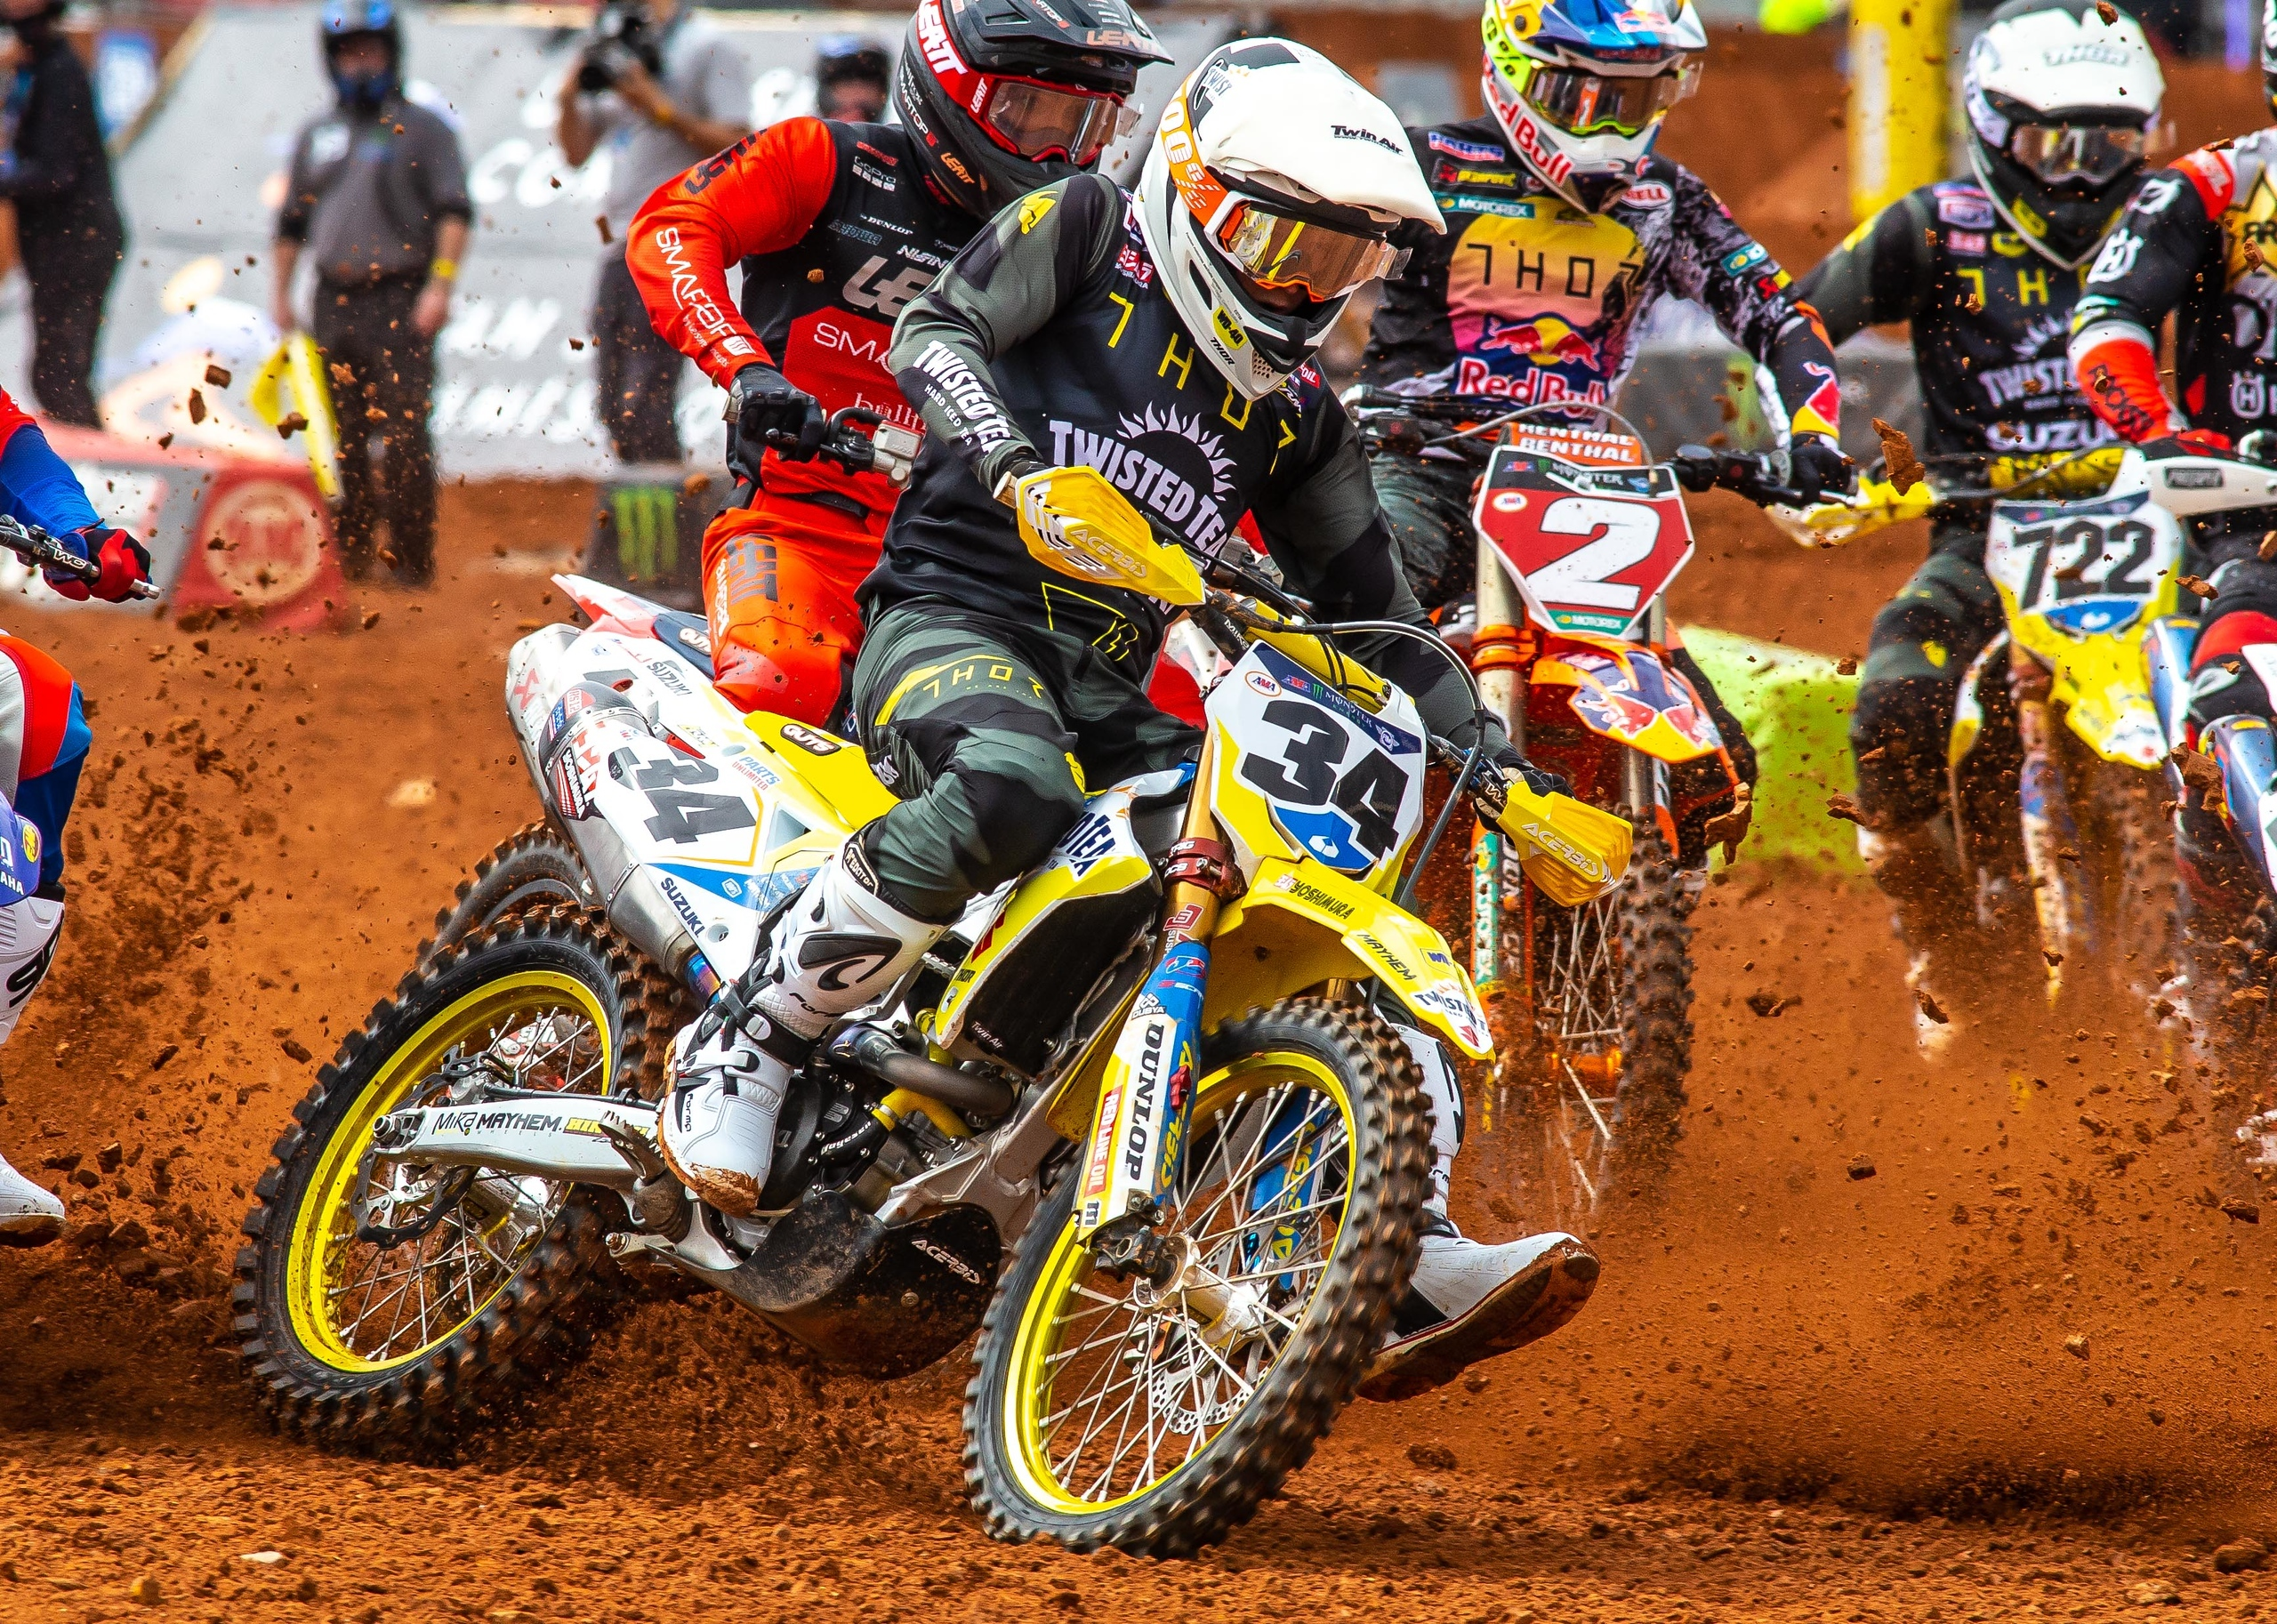 Max Anstie (34) showed the speed of his Suzuki RM-Z450 at the first of three races in Atlanta